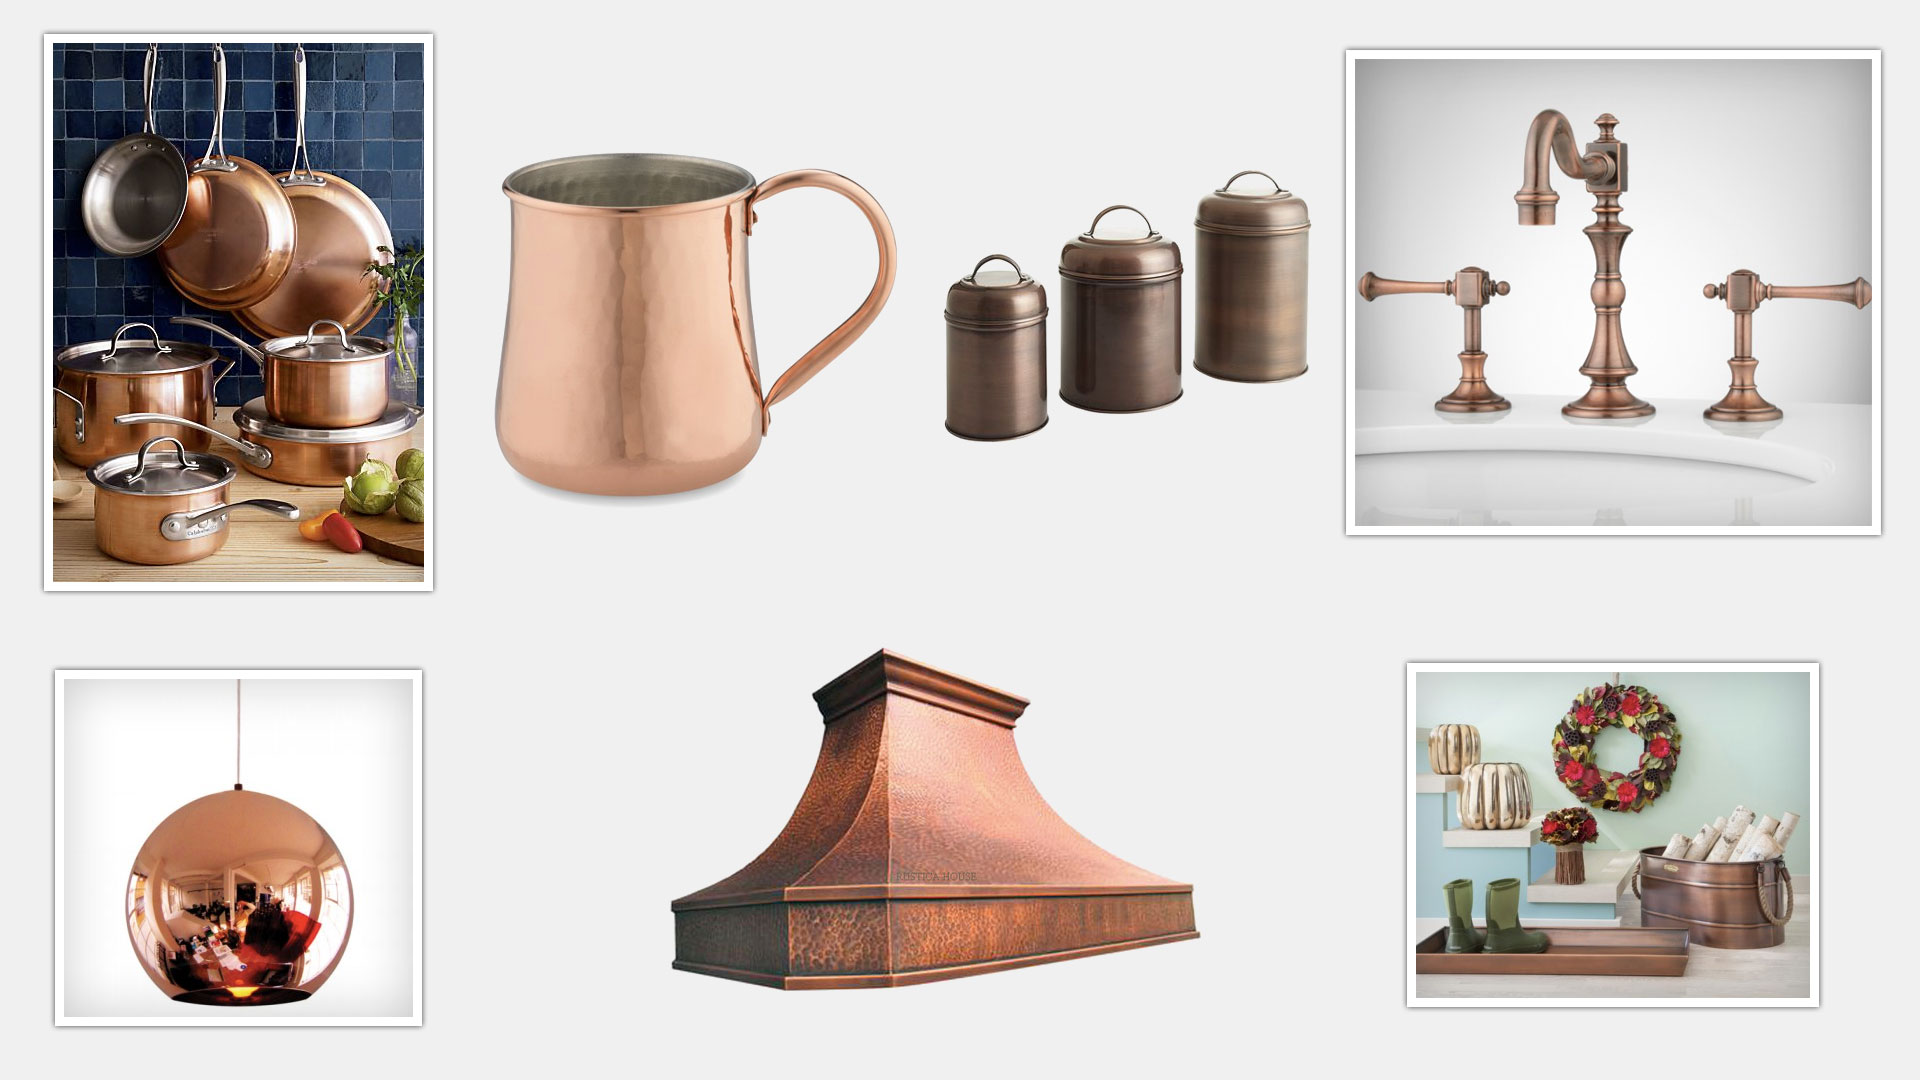 Bye, bye stainless steel. Copper is the new trend in town.